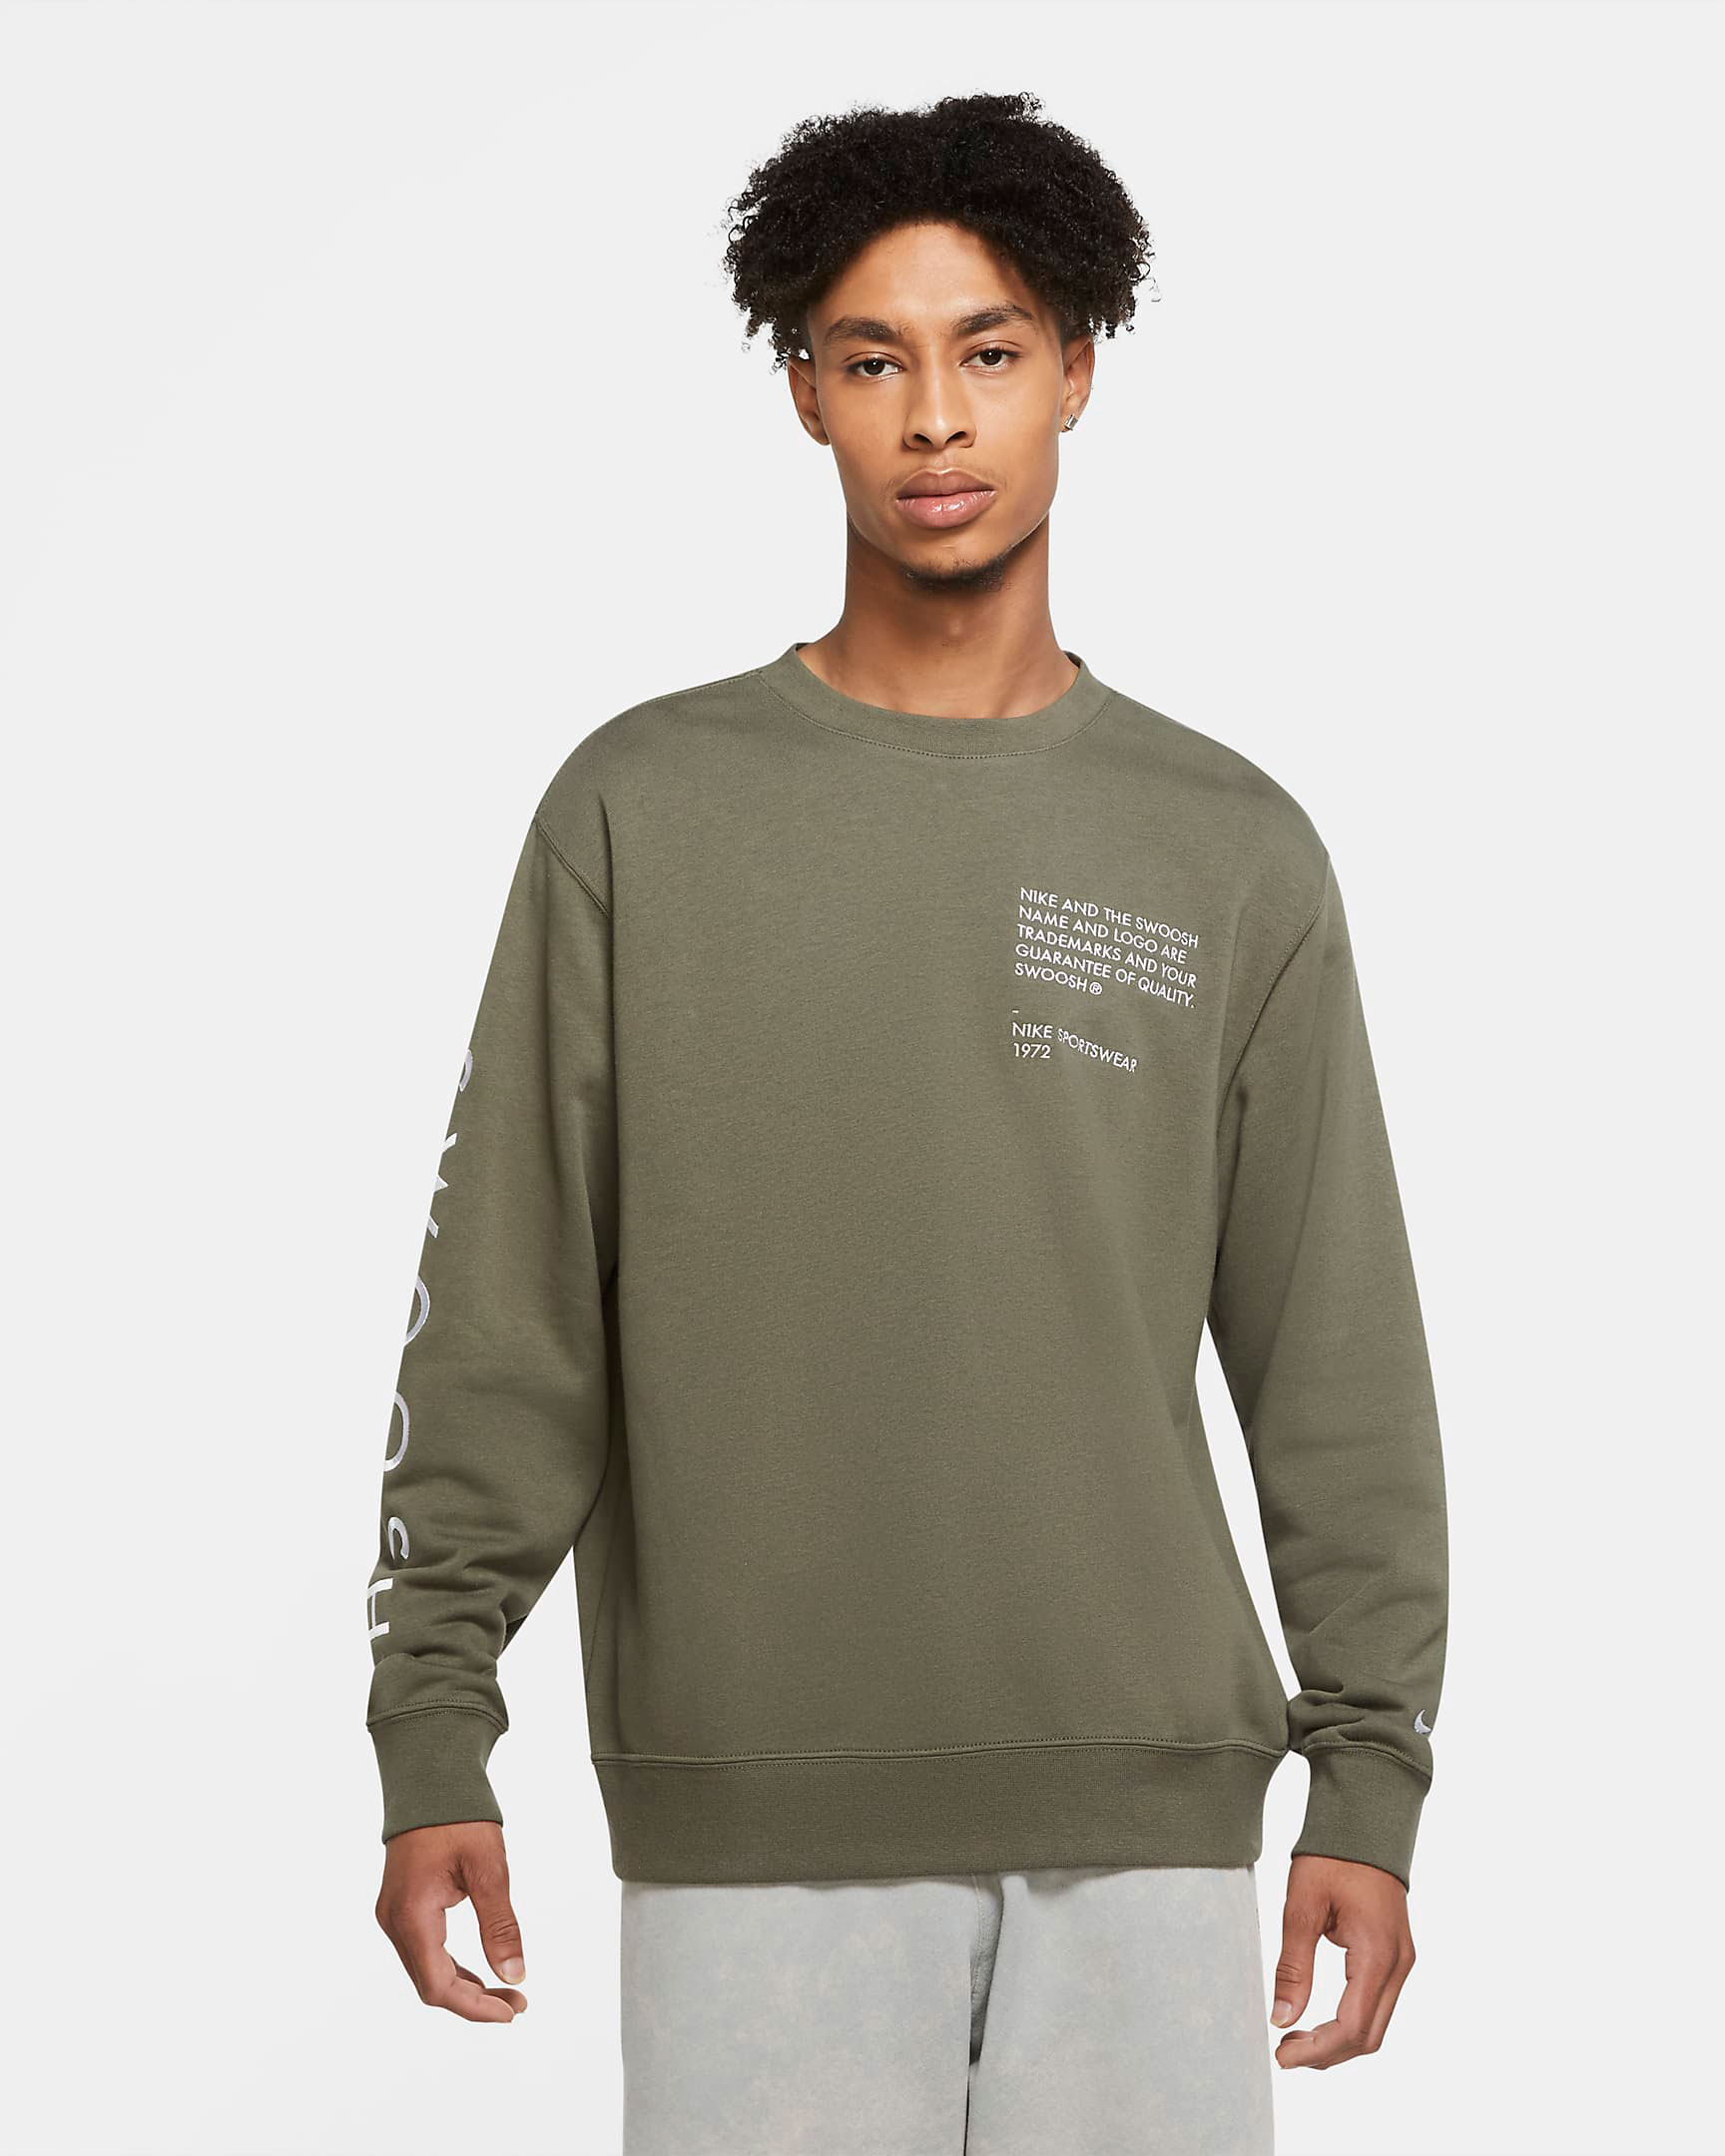 nike-sportswear-swoosh-sweatshirt-twilight-marsh-olive-green